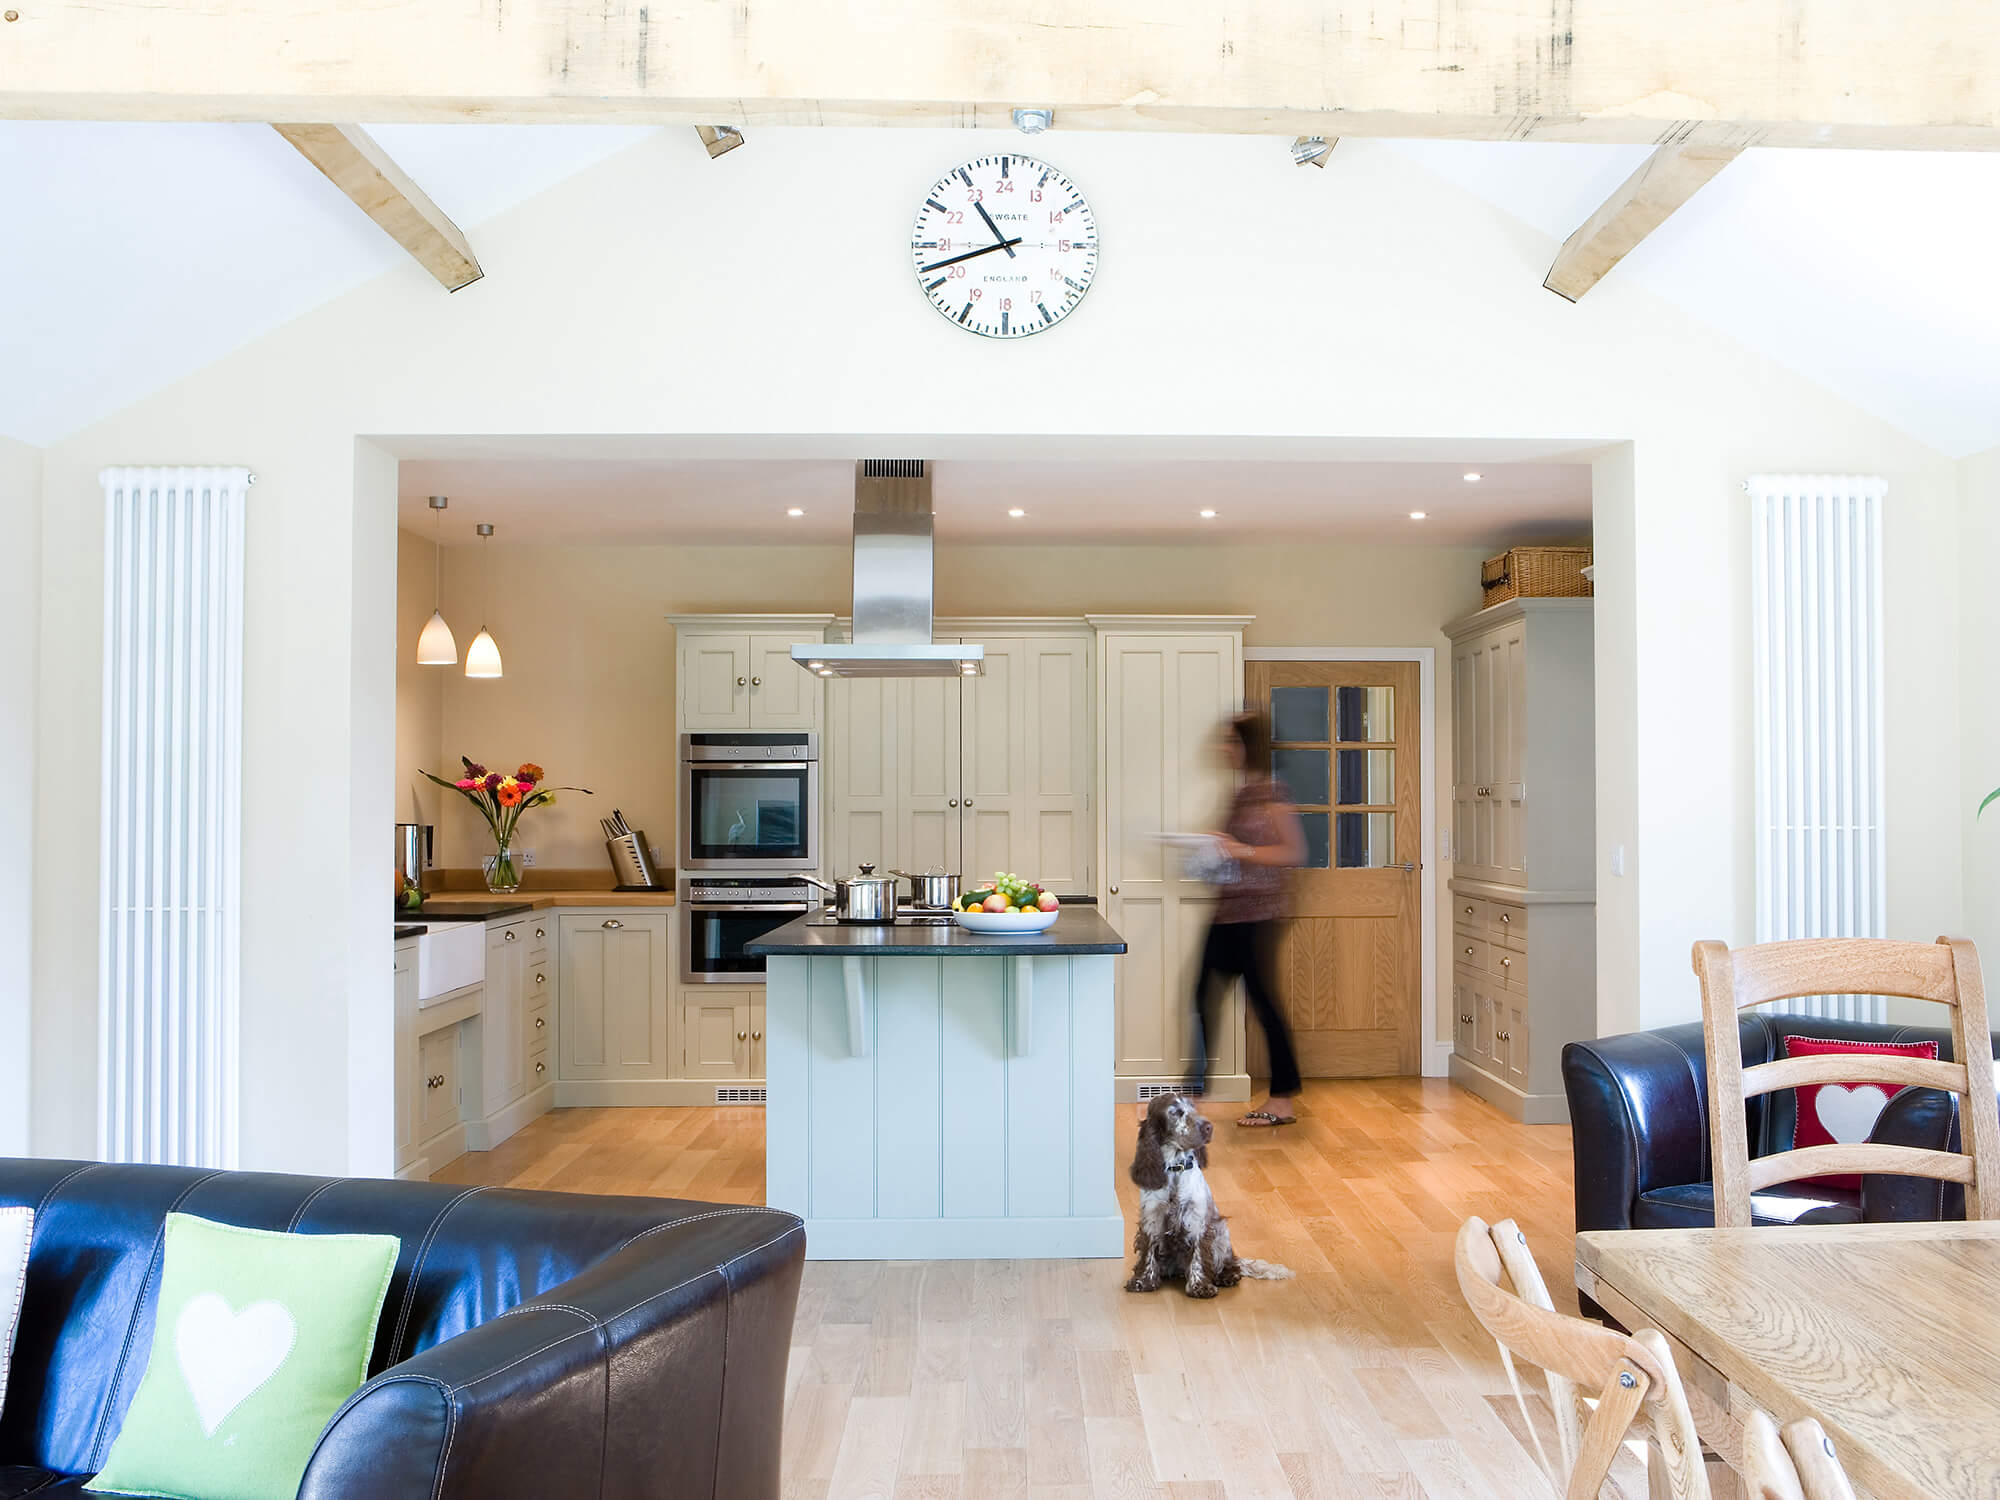 Cartledge Kitchen - Hill Farm Furniture